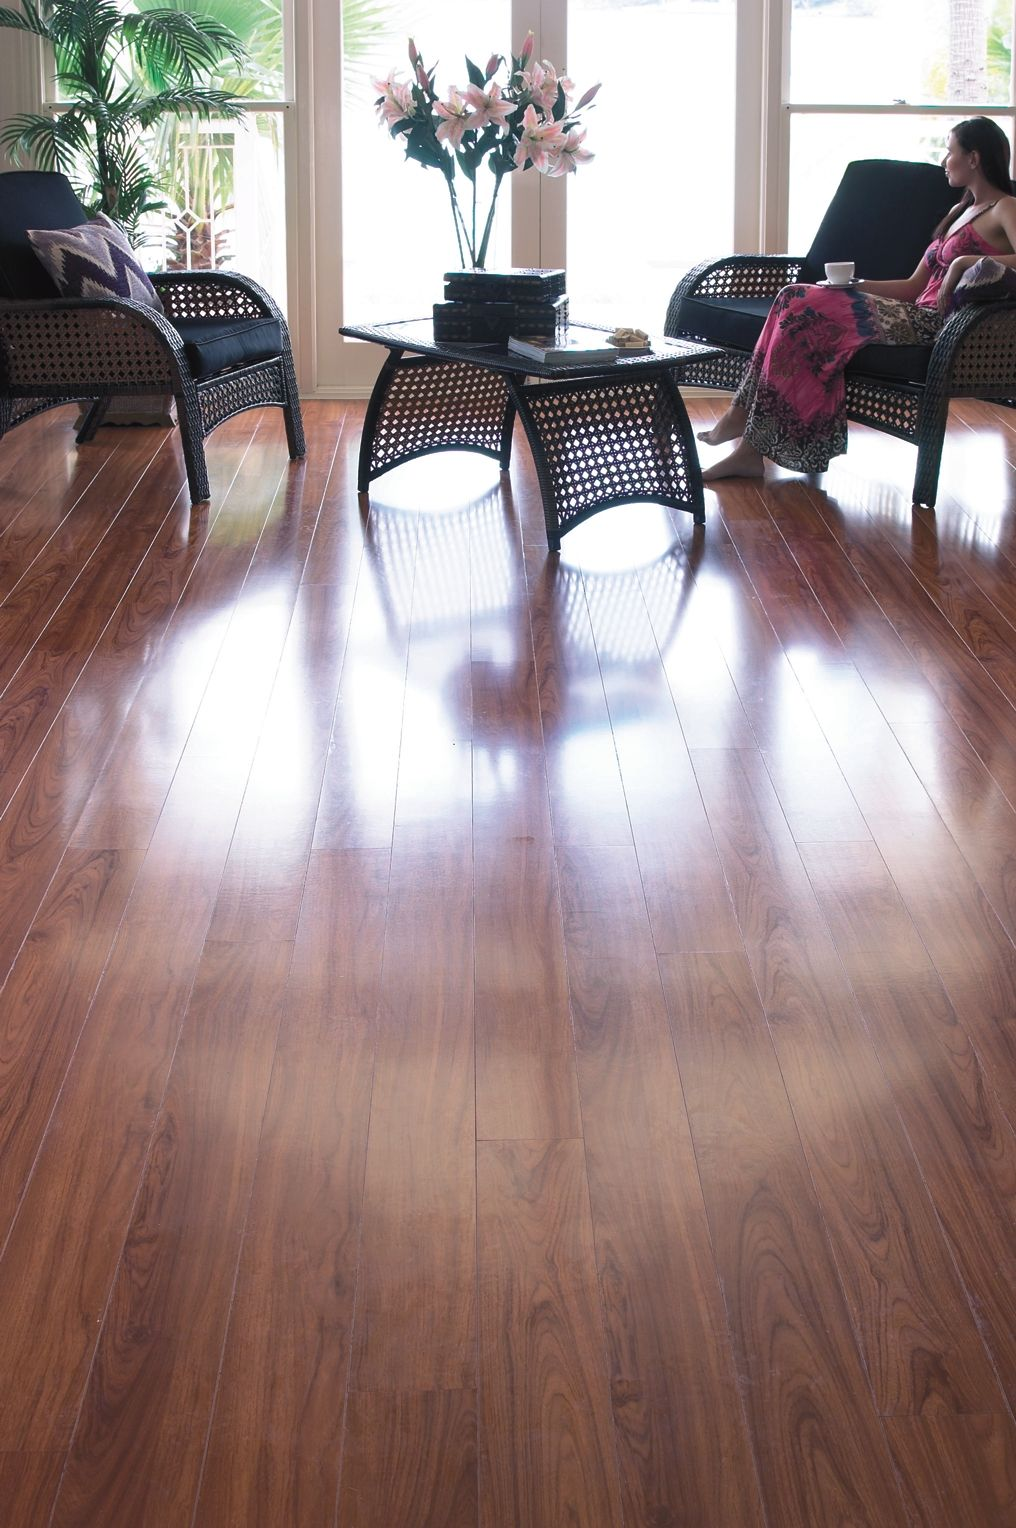 Timber Impressions  African Cherry  Laminate Flooring   Combines     Timber Impressions  African Cherry  Laminate Flooring   Combines realistic  print technology with a high